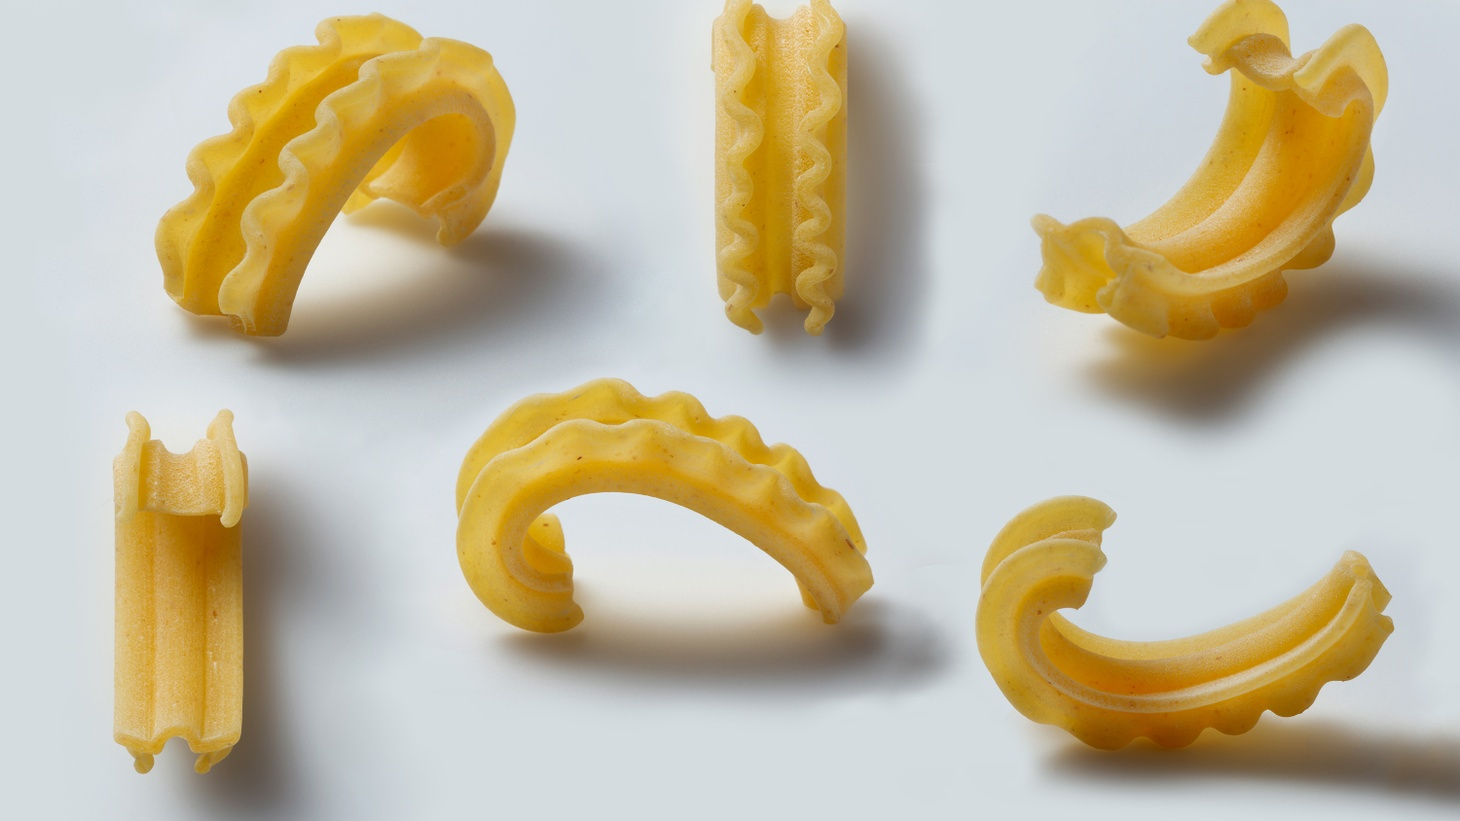 """""""The ruffles of the cascatelli are very playful in the mouth,"""" says Dan Pashman of the new pasta shape he created."""